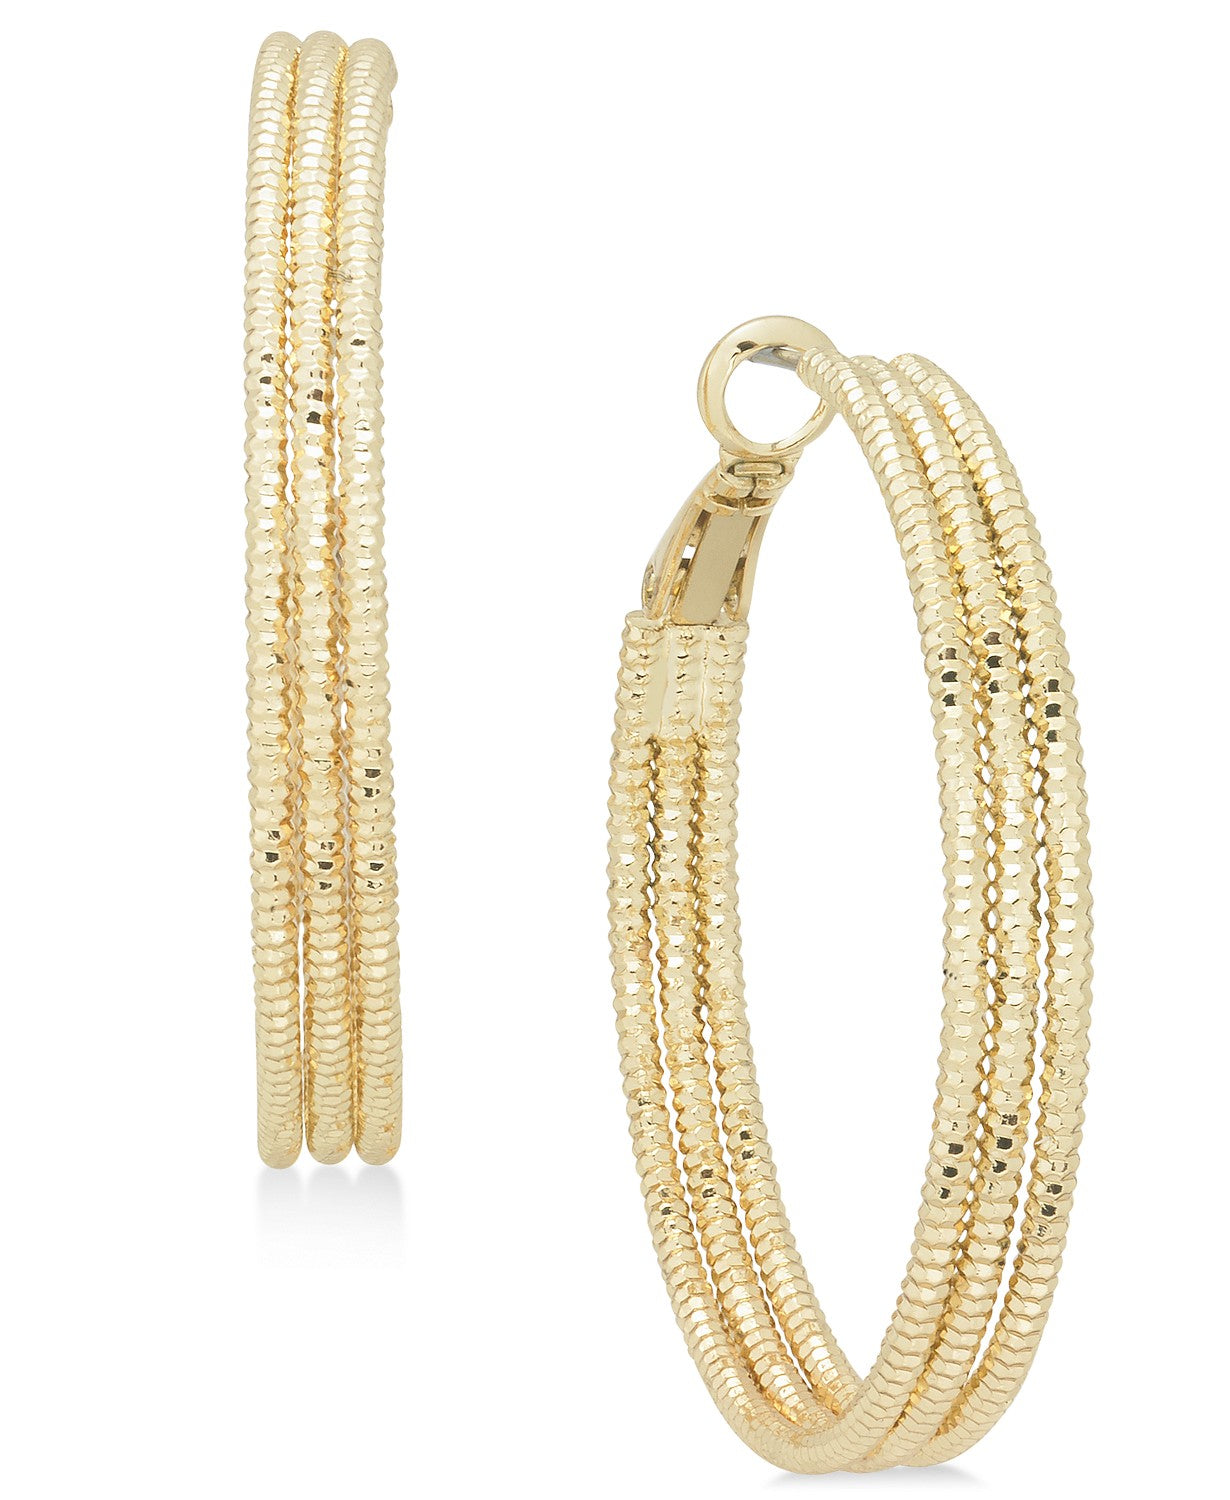 Charter Club Large Gold-Tone Triple-Row Textured Hoop Earrings, 1.6""